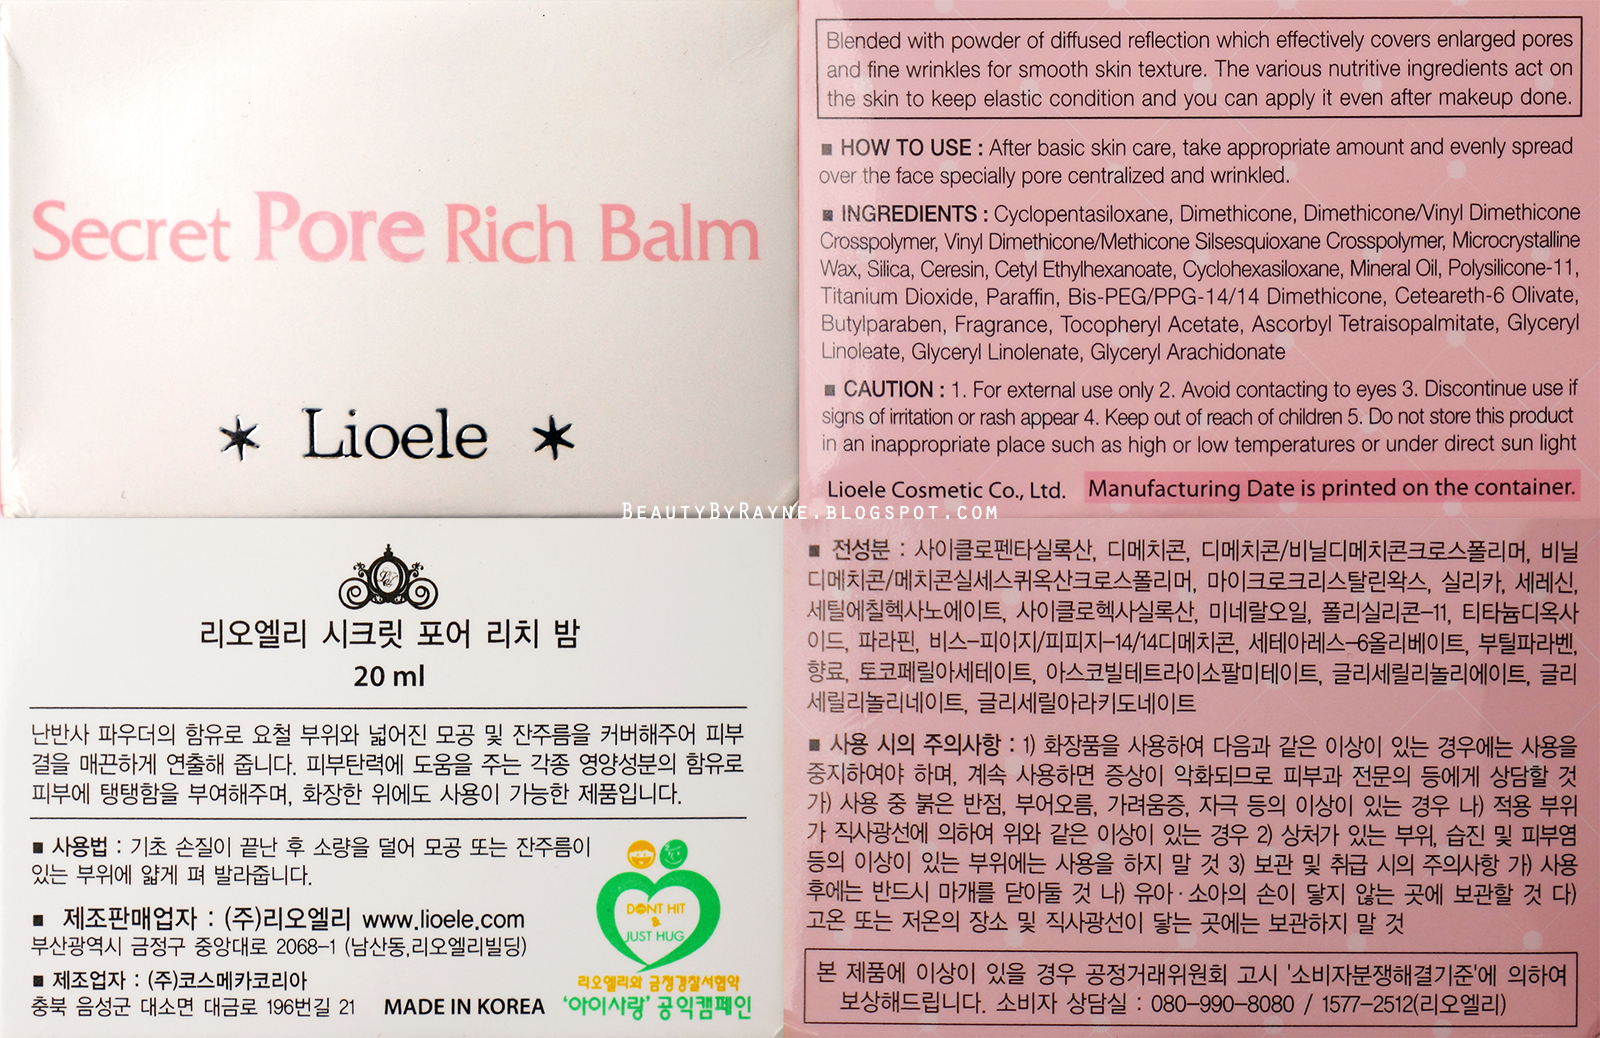 Lioele Secret Pore Rich Balm Box Ingredients